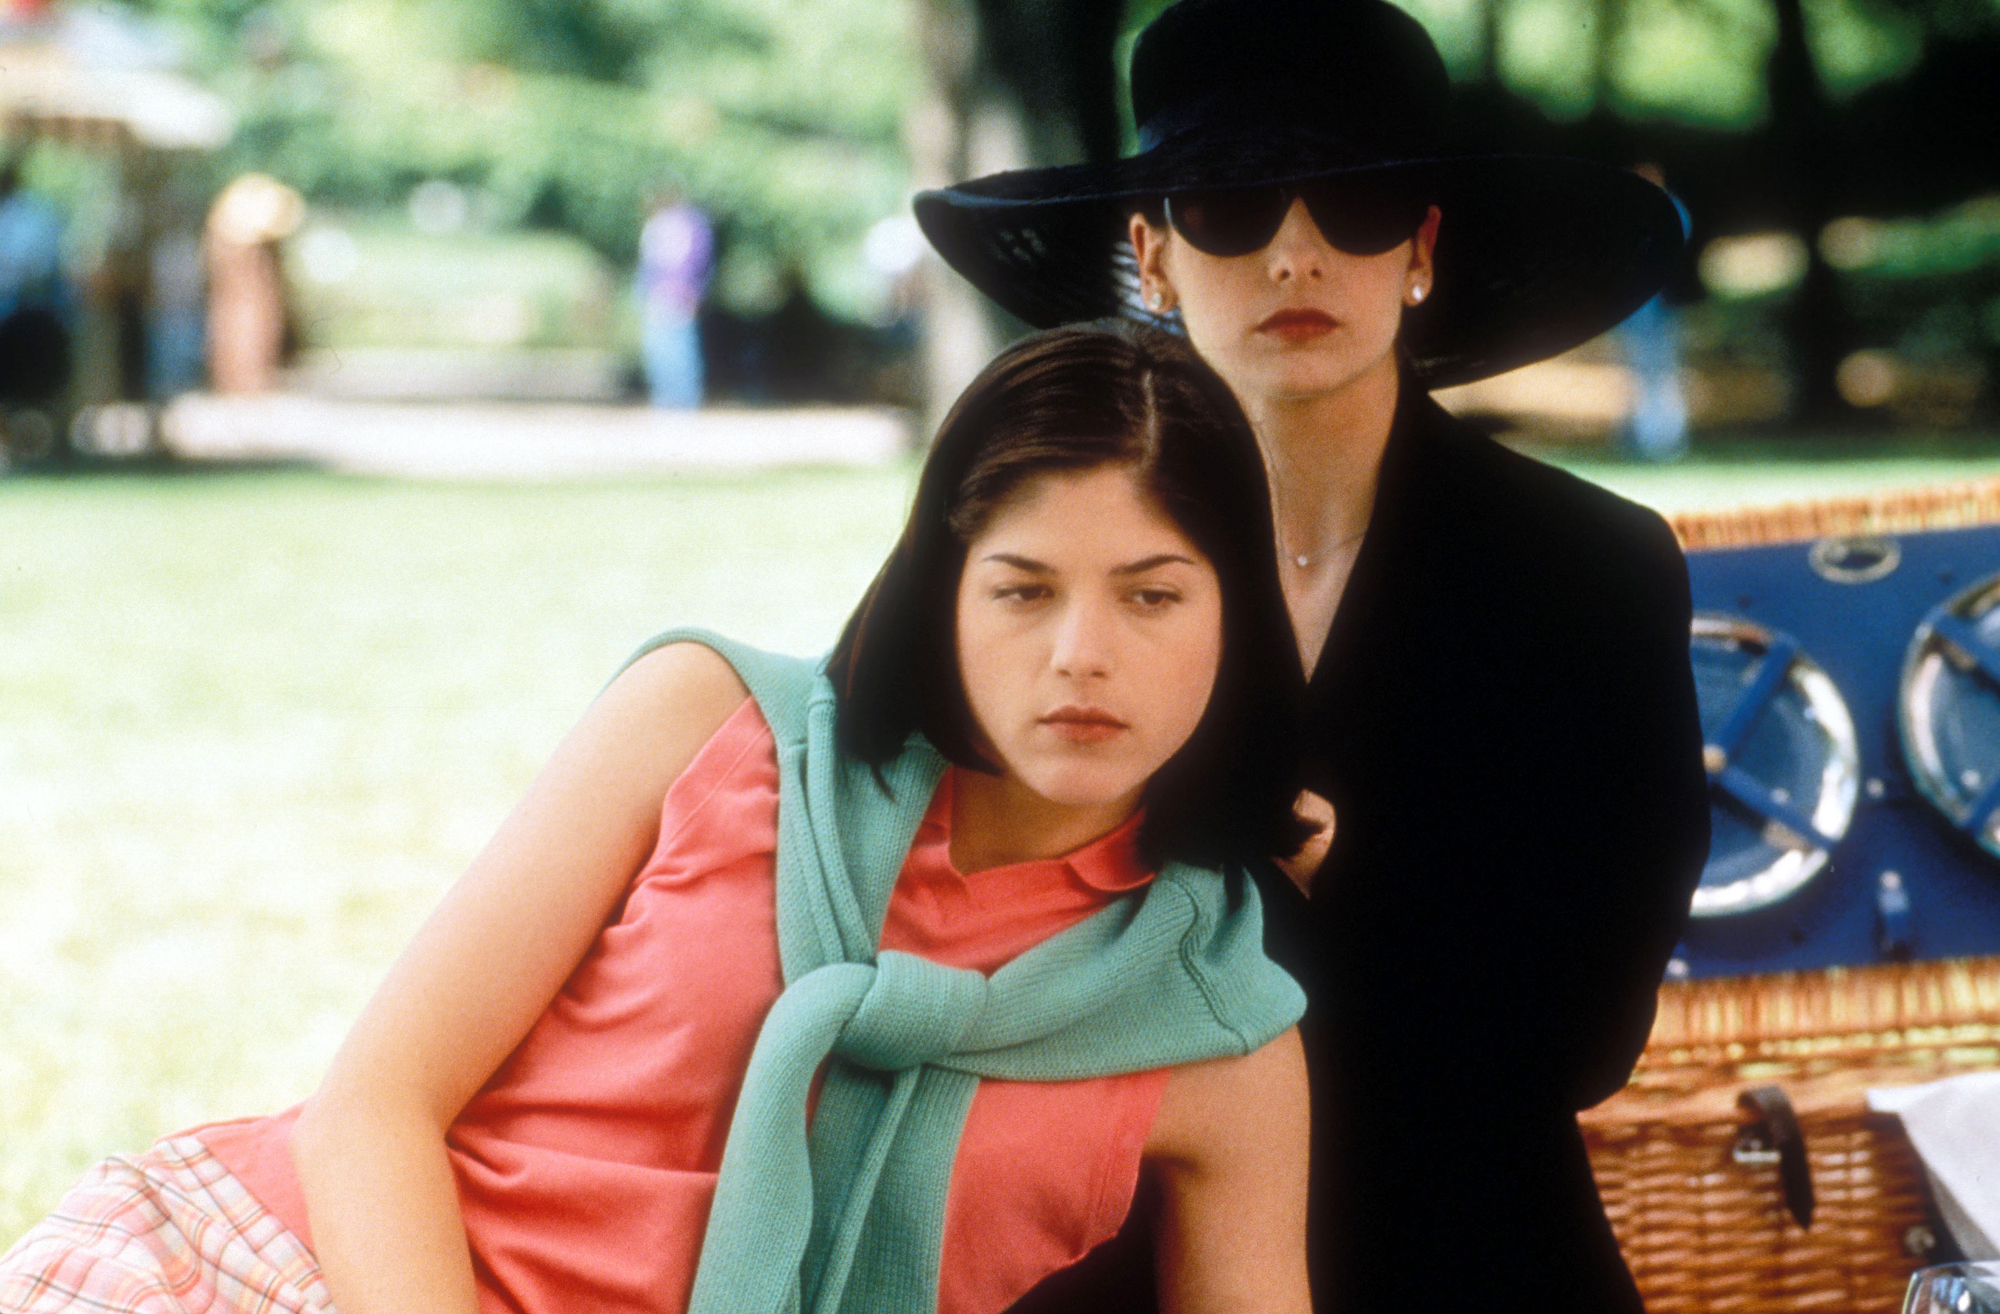 Selma Blair and Sarah Michelle Gellar